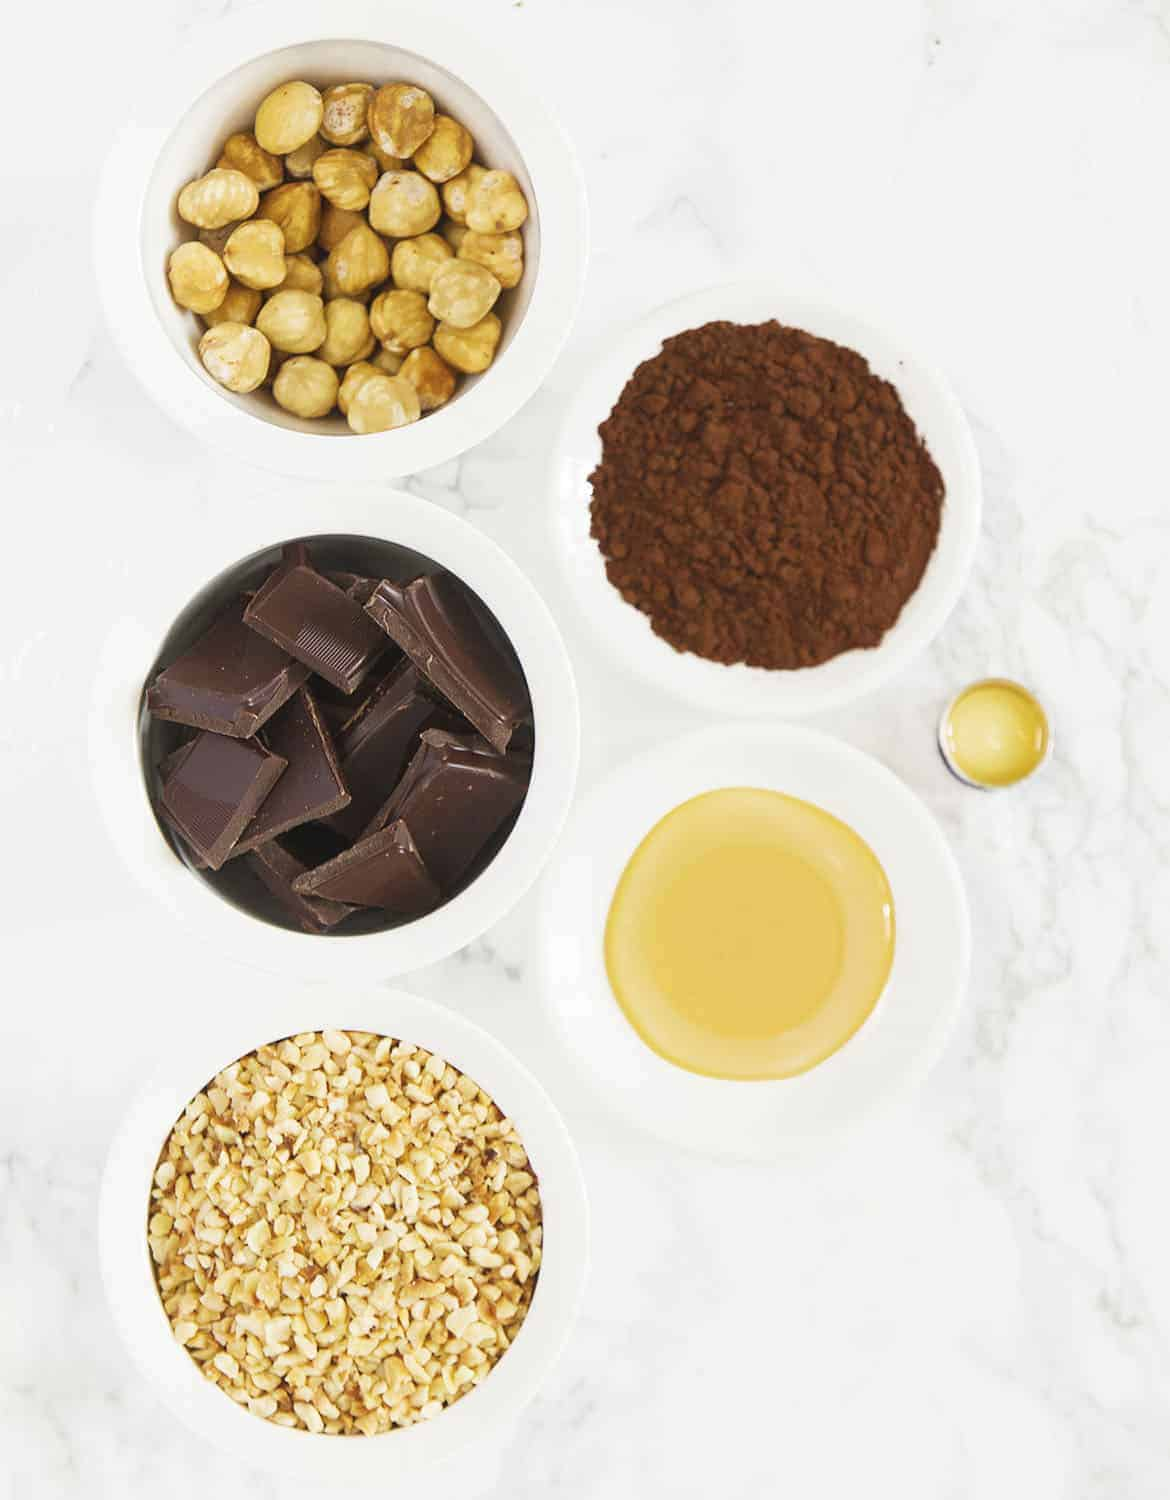 The ingredients for these homemade Ferrero Rocher truffles are arranged over a white background.